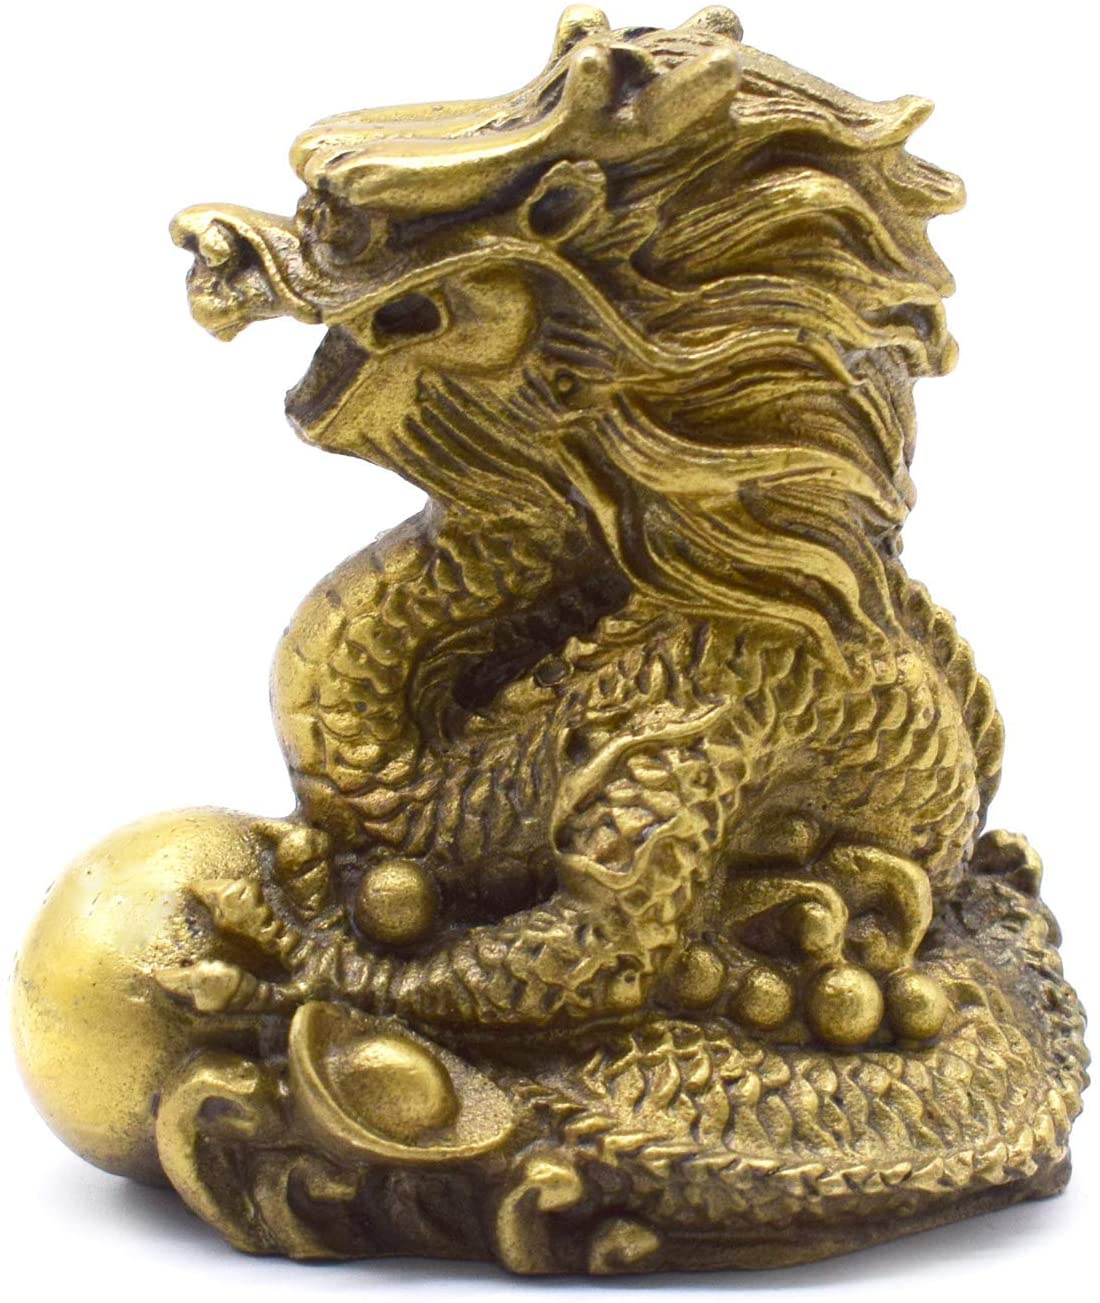 better us Chinese Feng Shui Dragon Brass Statue Sculpture Home Office Decoration Tabletop Decor Ornaments for Wealth and Success Good Lucky Gifts (Small)